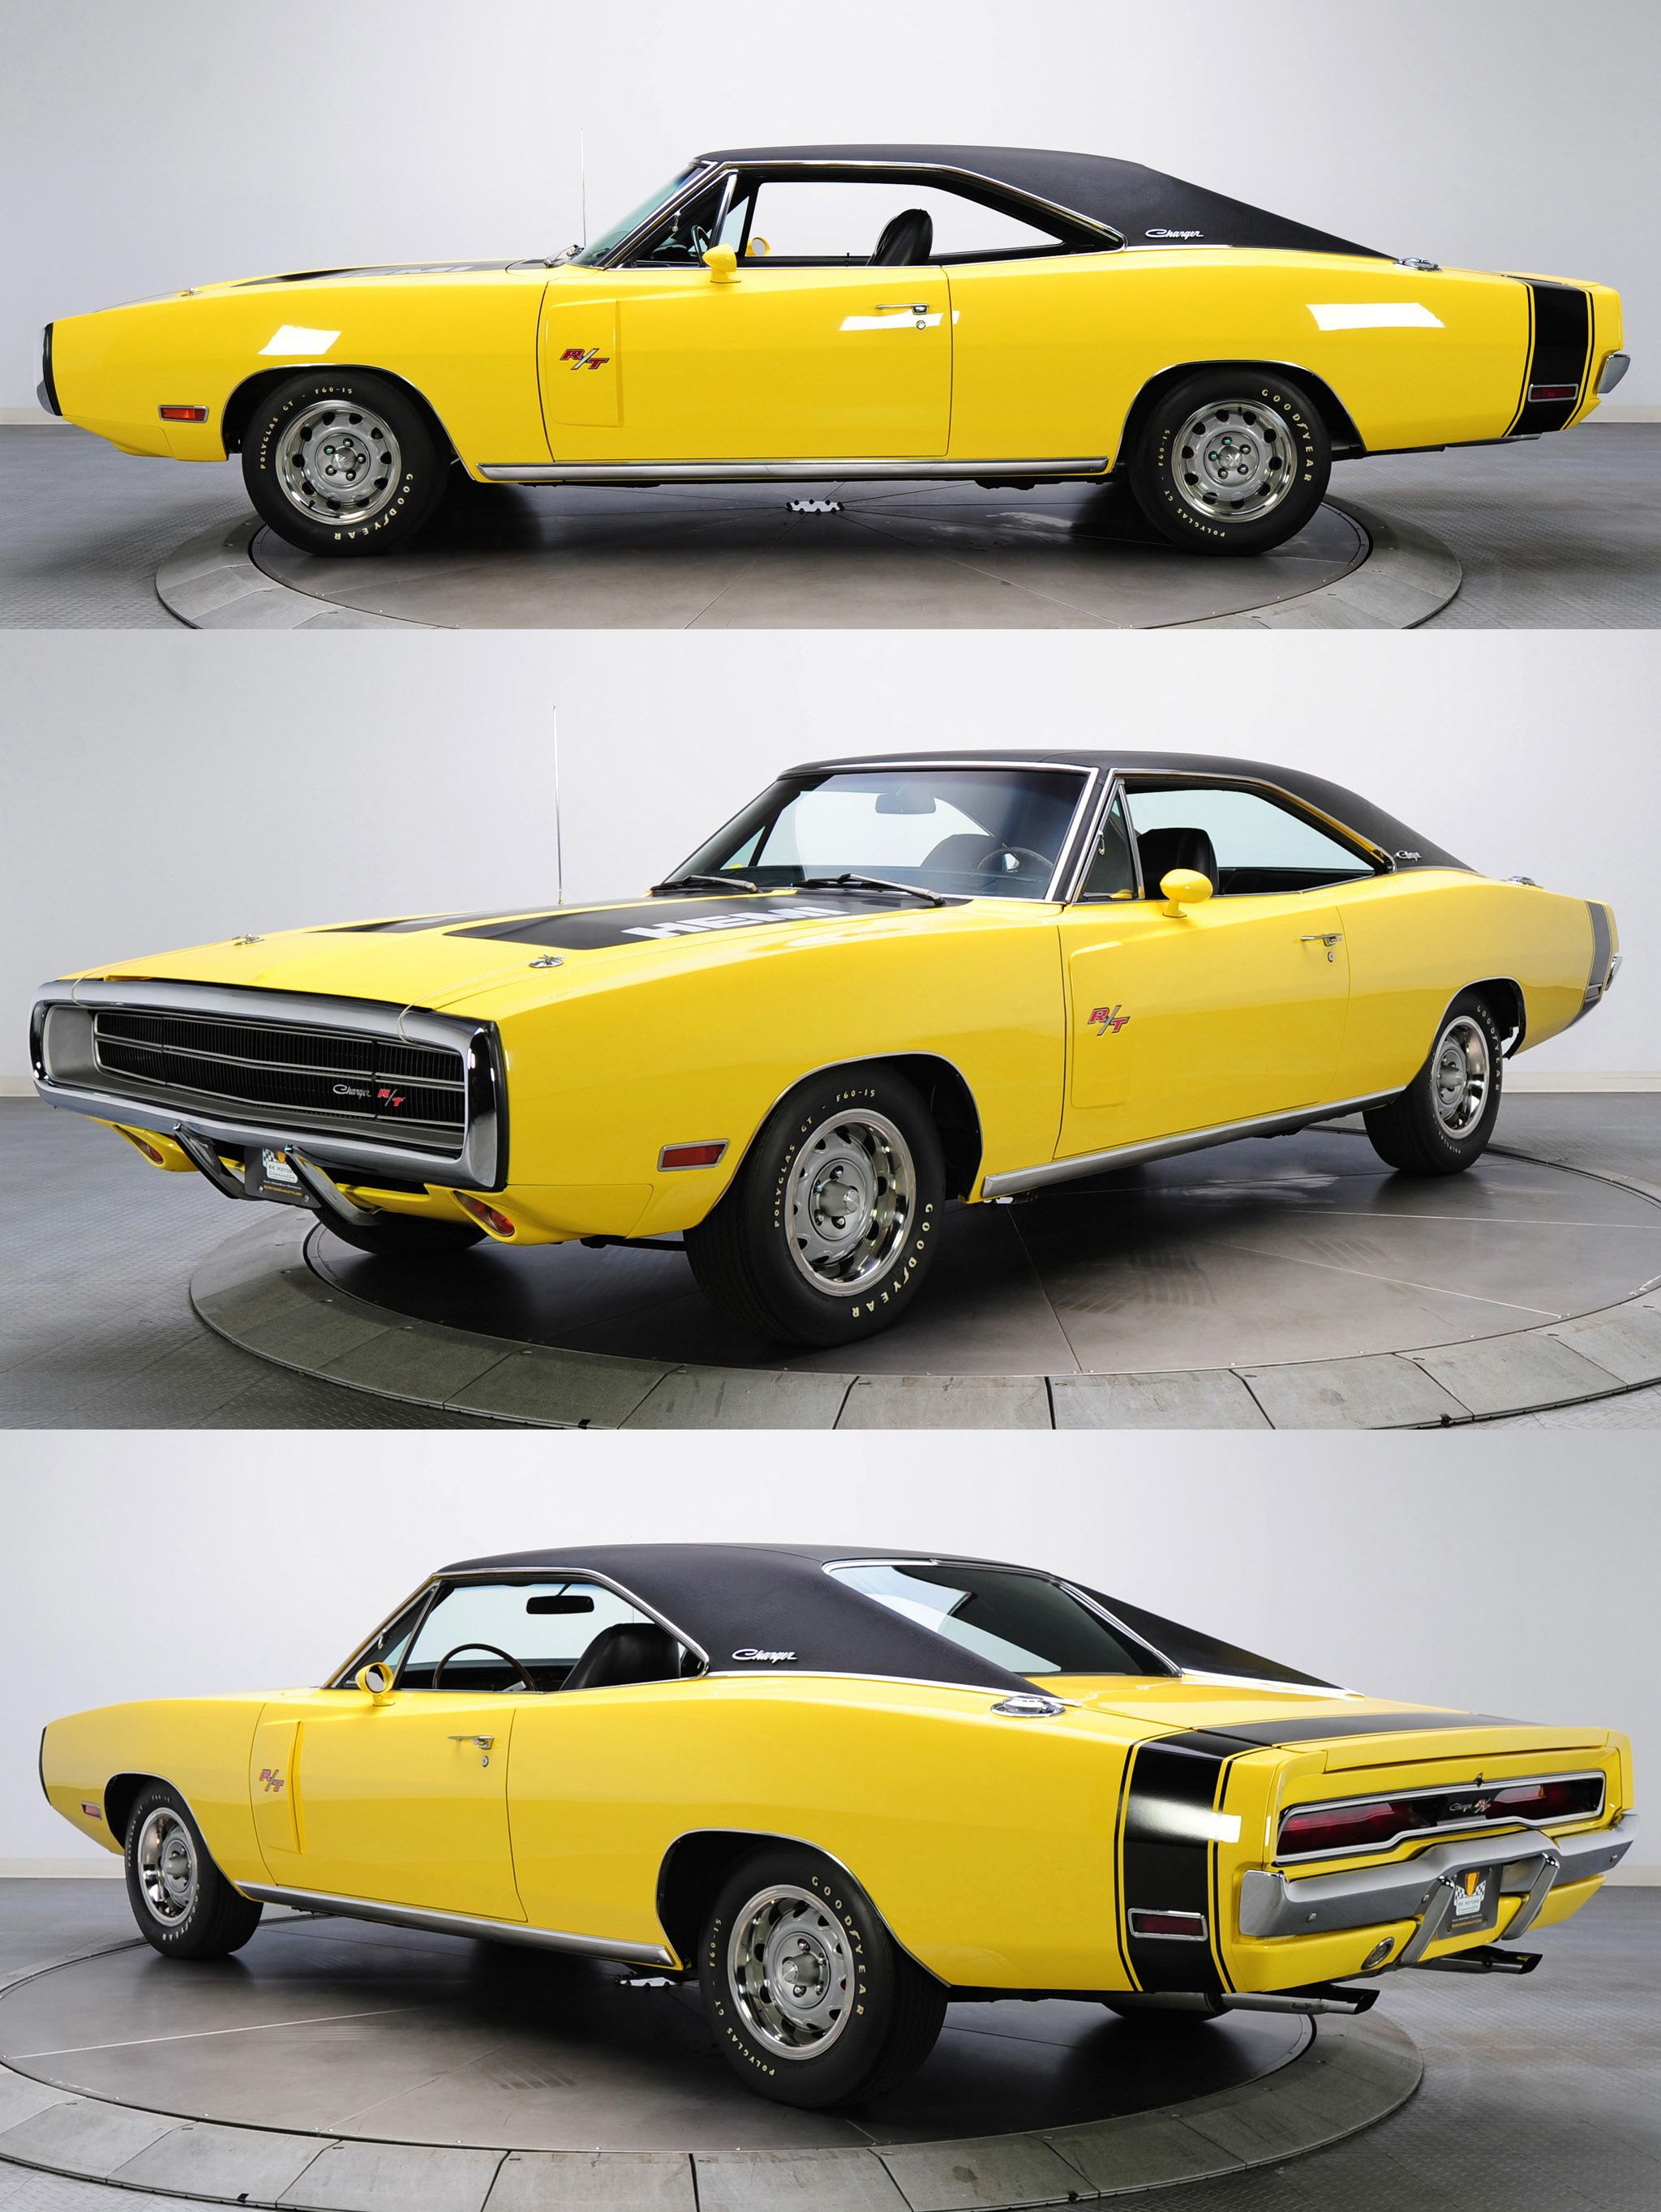 1970 Dodge Charger Rt: 1970 Dodge Charger R/T 426 Hemi